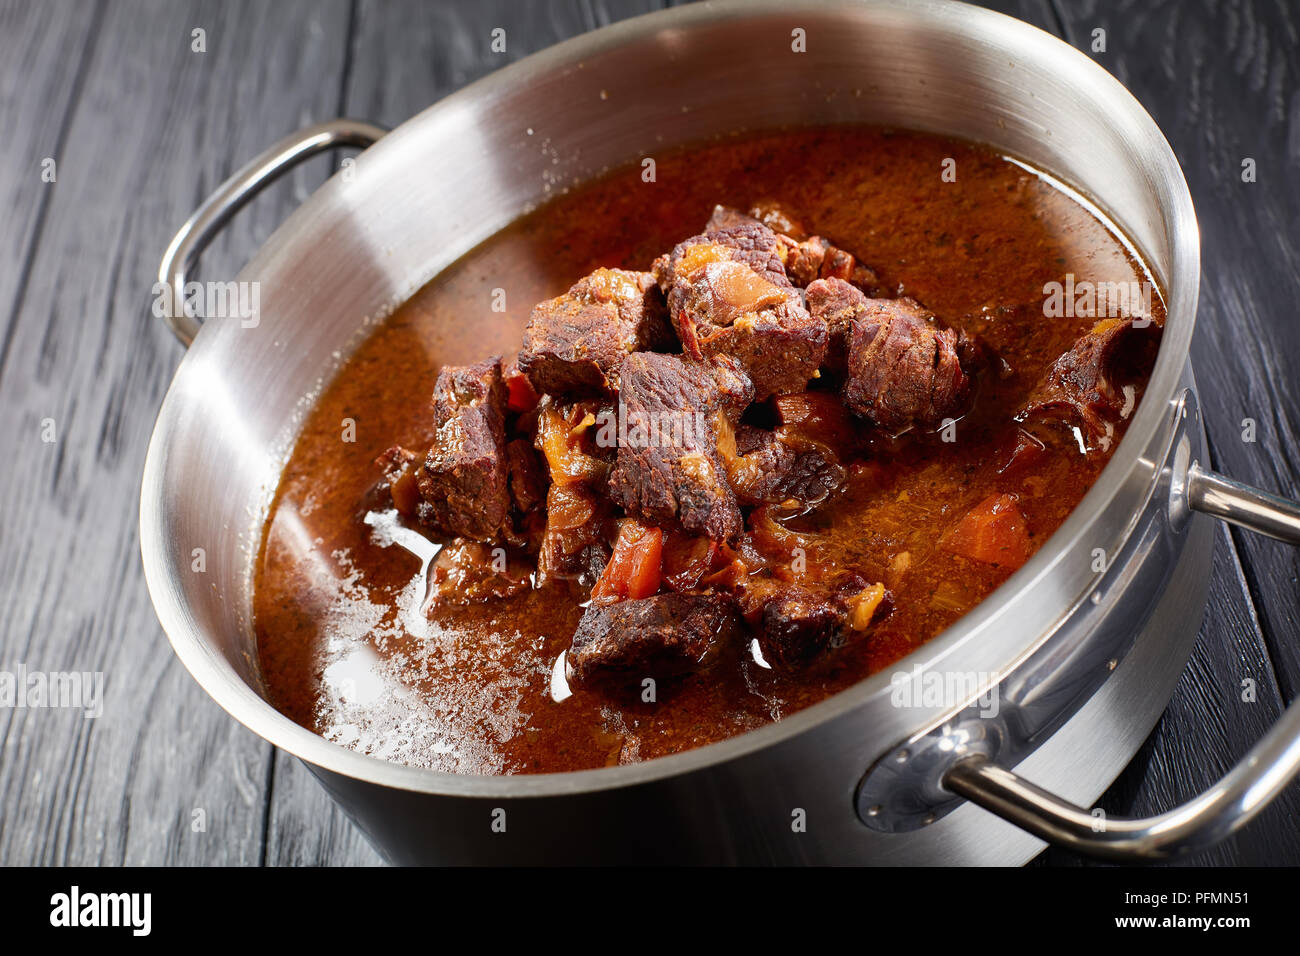 close-up of delicious homemade hot Czech beef goulash in a stainless pan on black wooden table, view from above Stock Photo